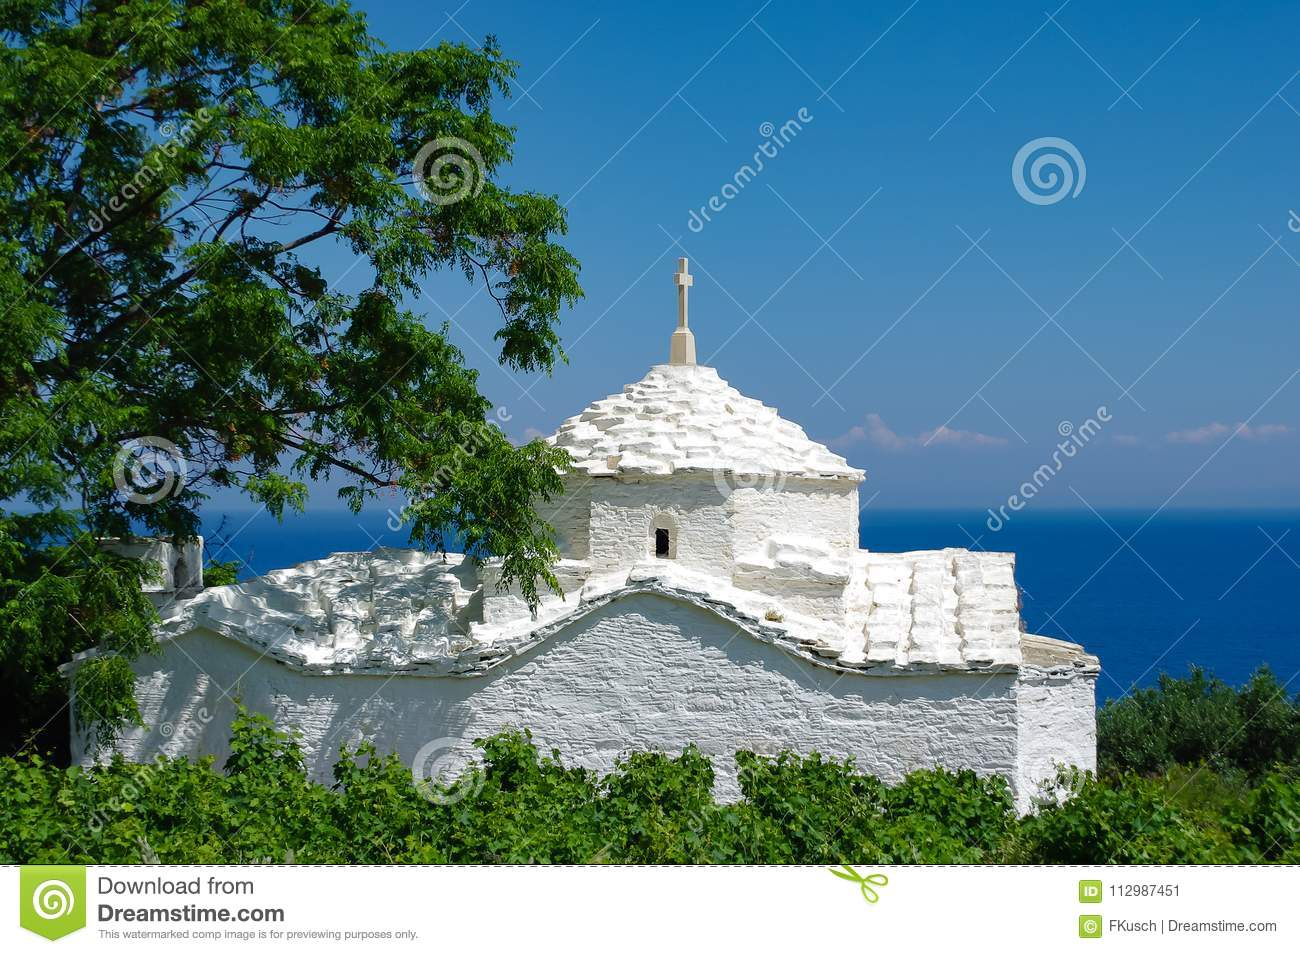 White church in front of the blue sea, framed by bushes and a tree, Samos, Greece